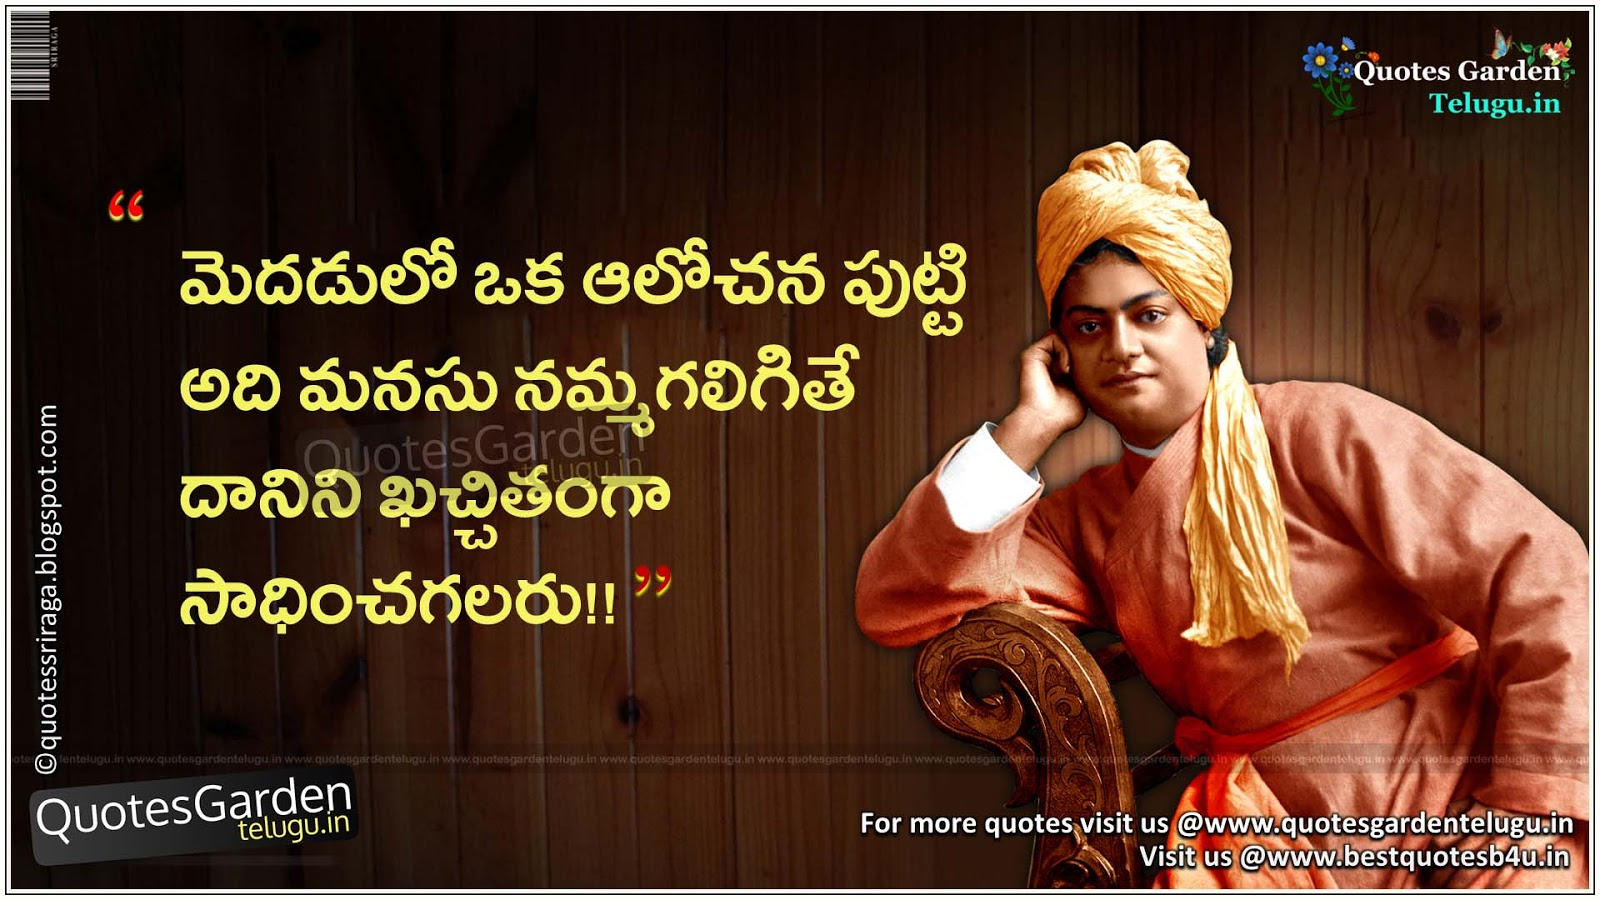 Vivekananda Inspirational Telugu Quotations With Hd Images